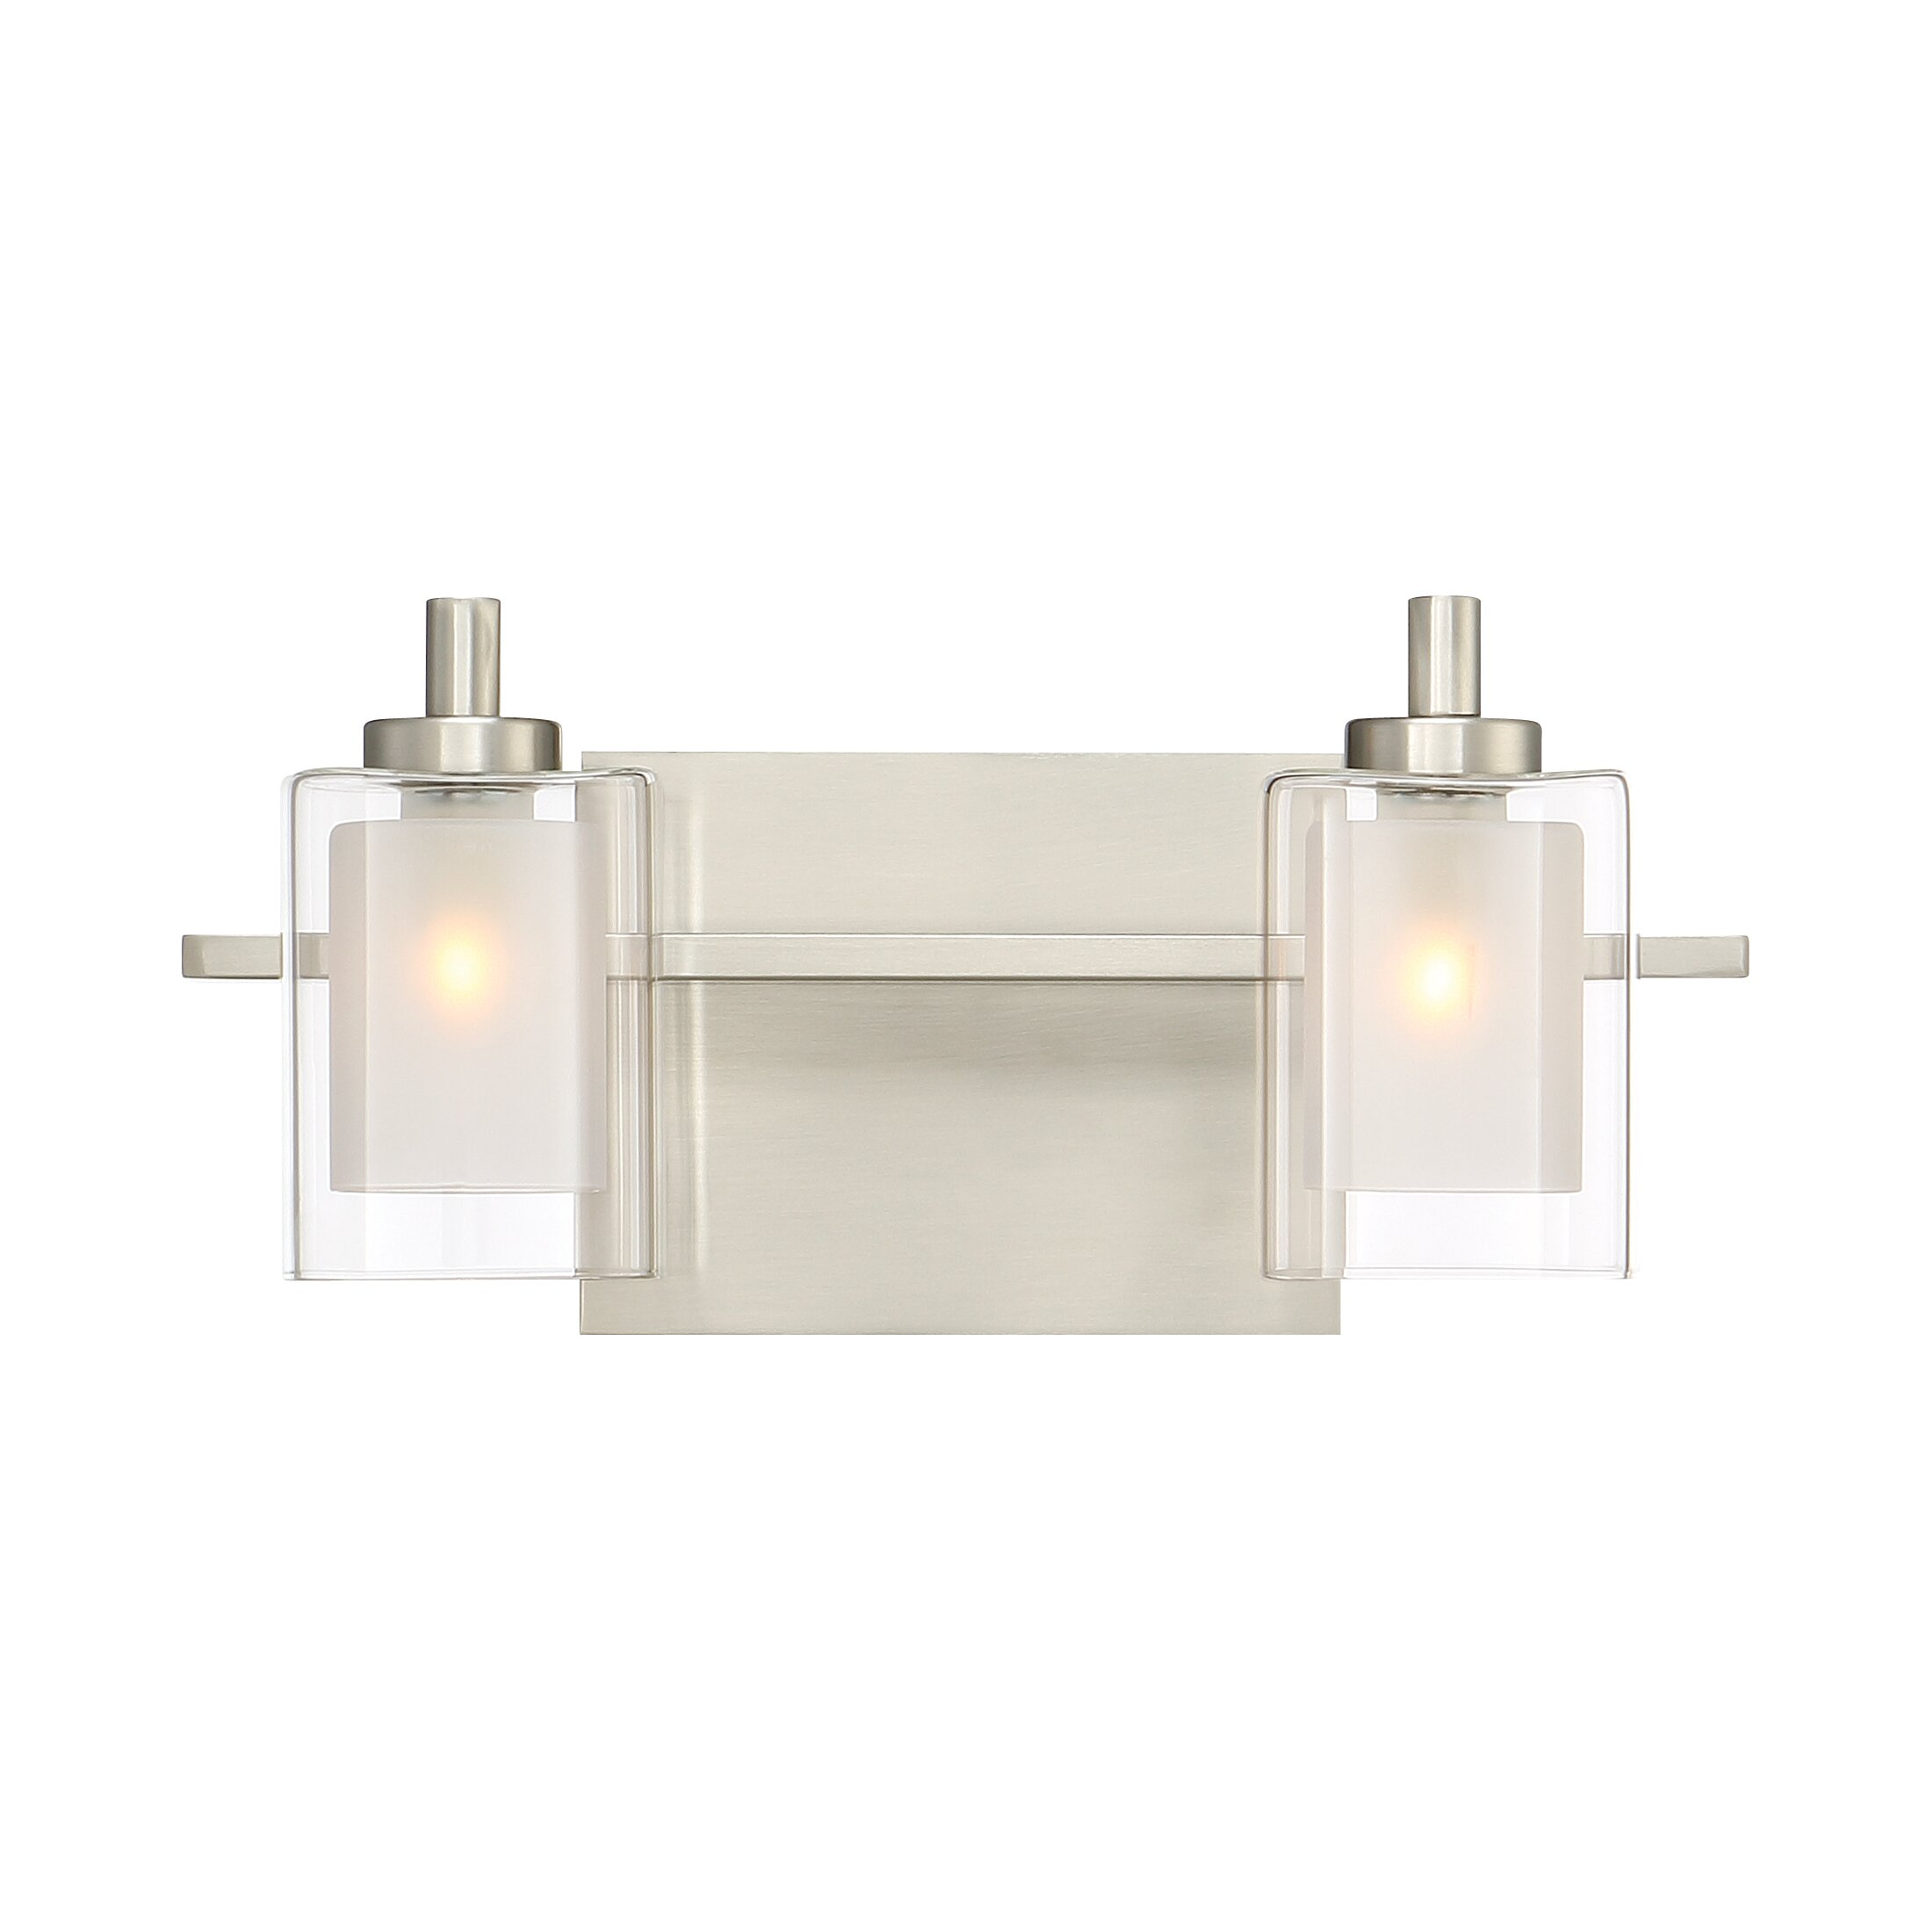 Quoizel Kolt 2 Light Bath Bar Reviews Wayfair